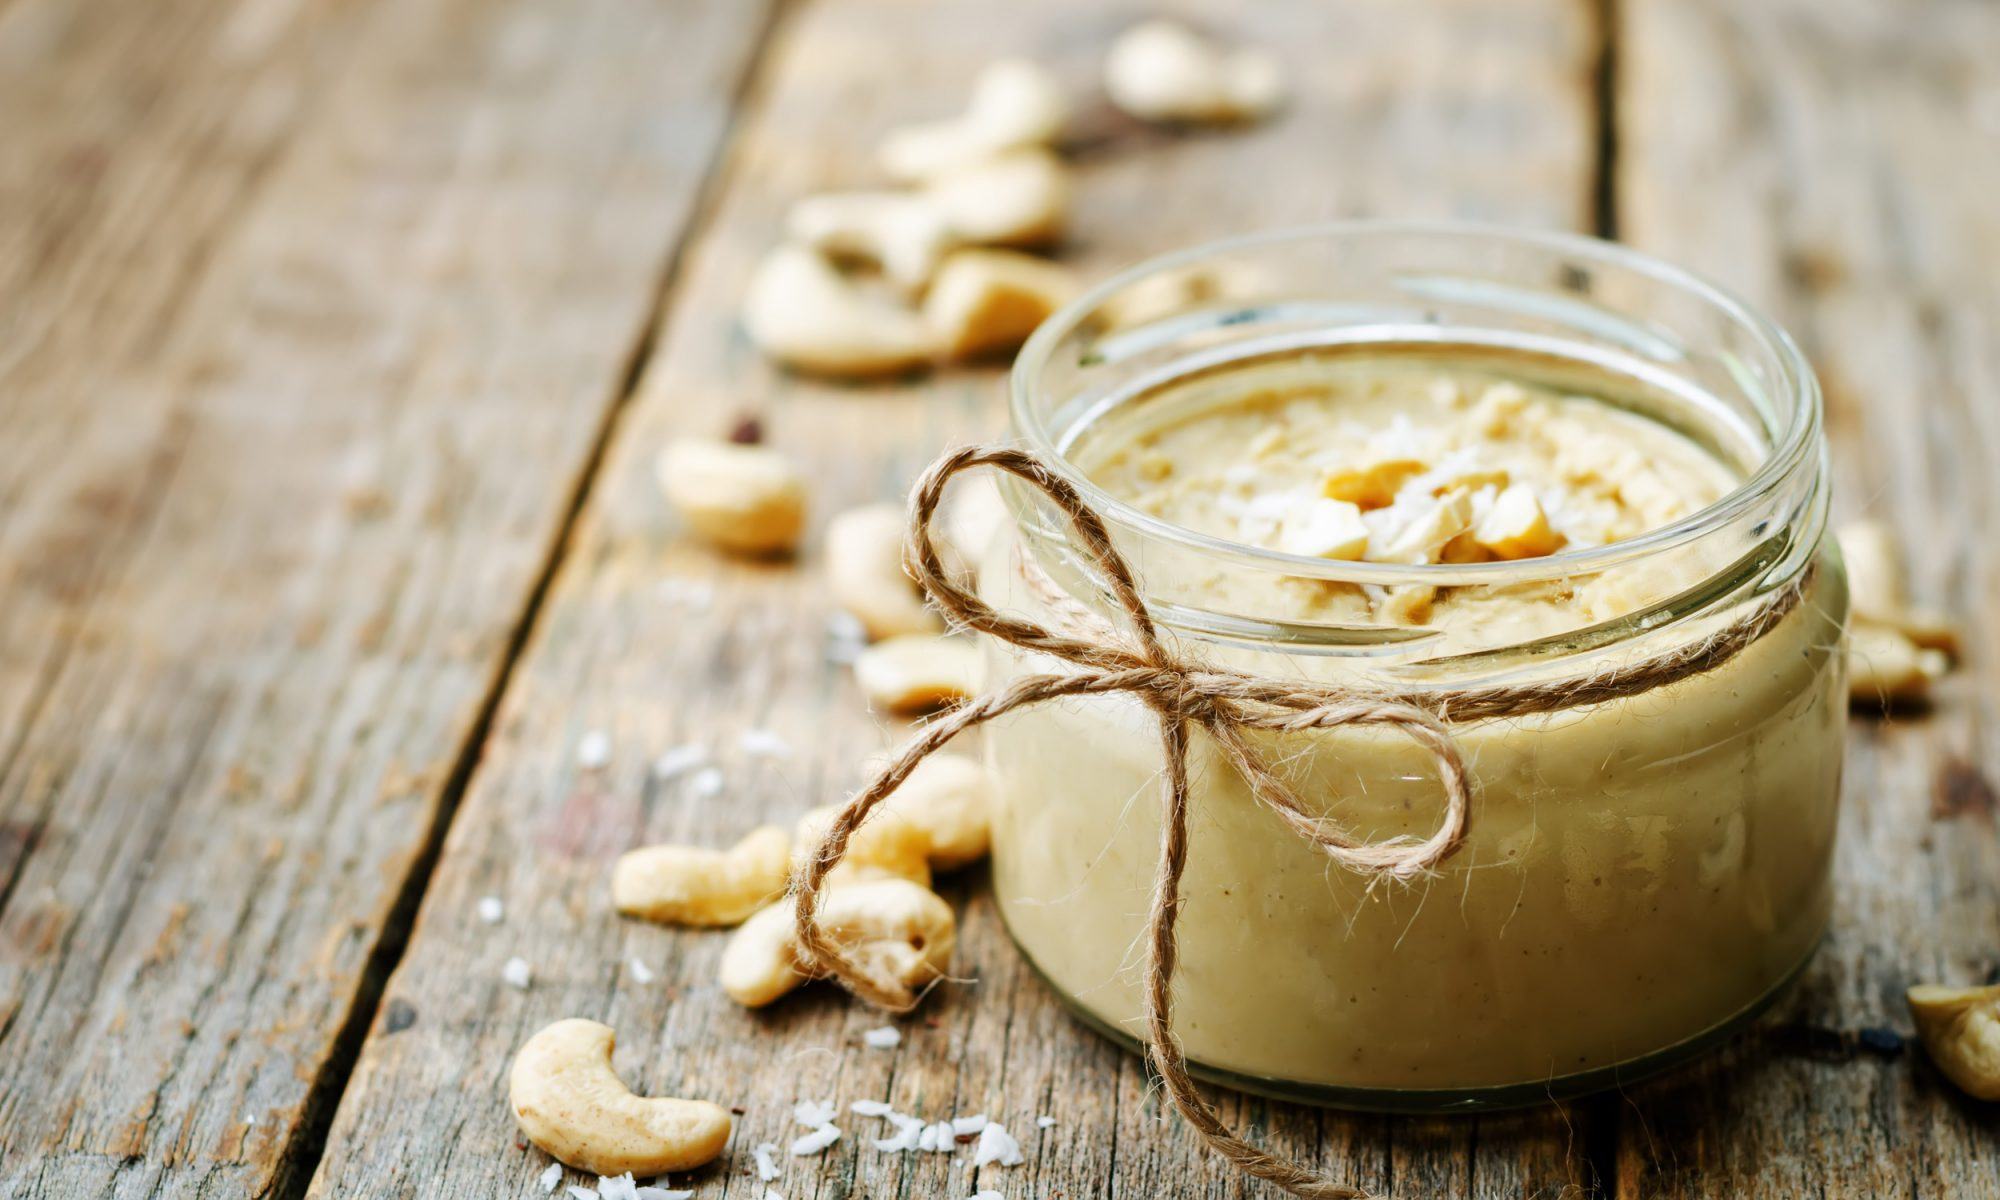 Make Nut Butter at Home and Never Buy a Jar Again